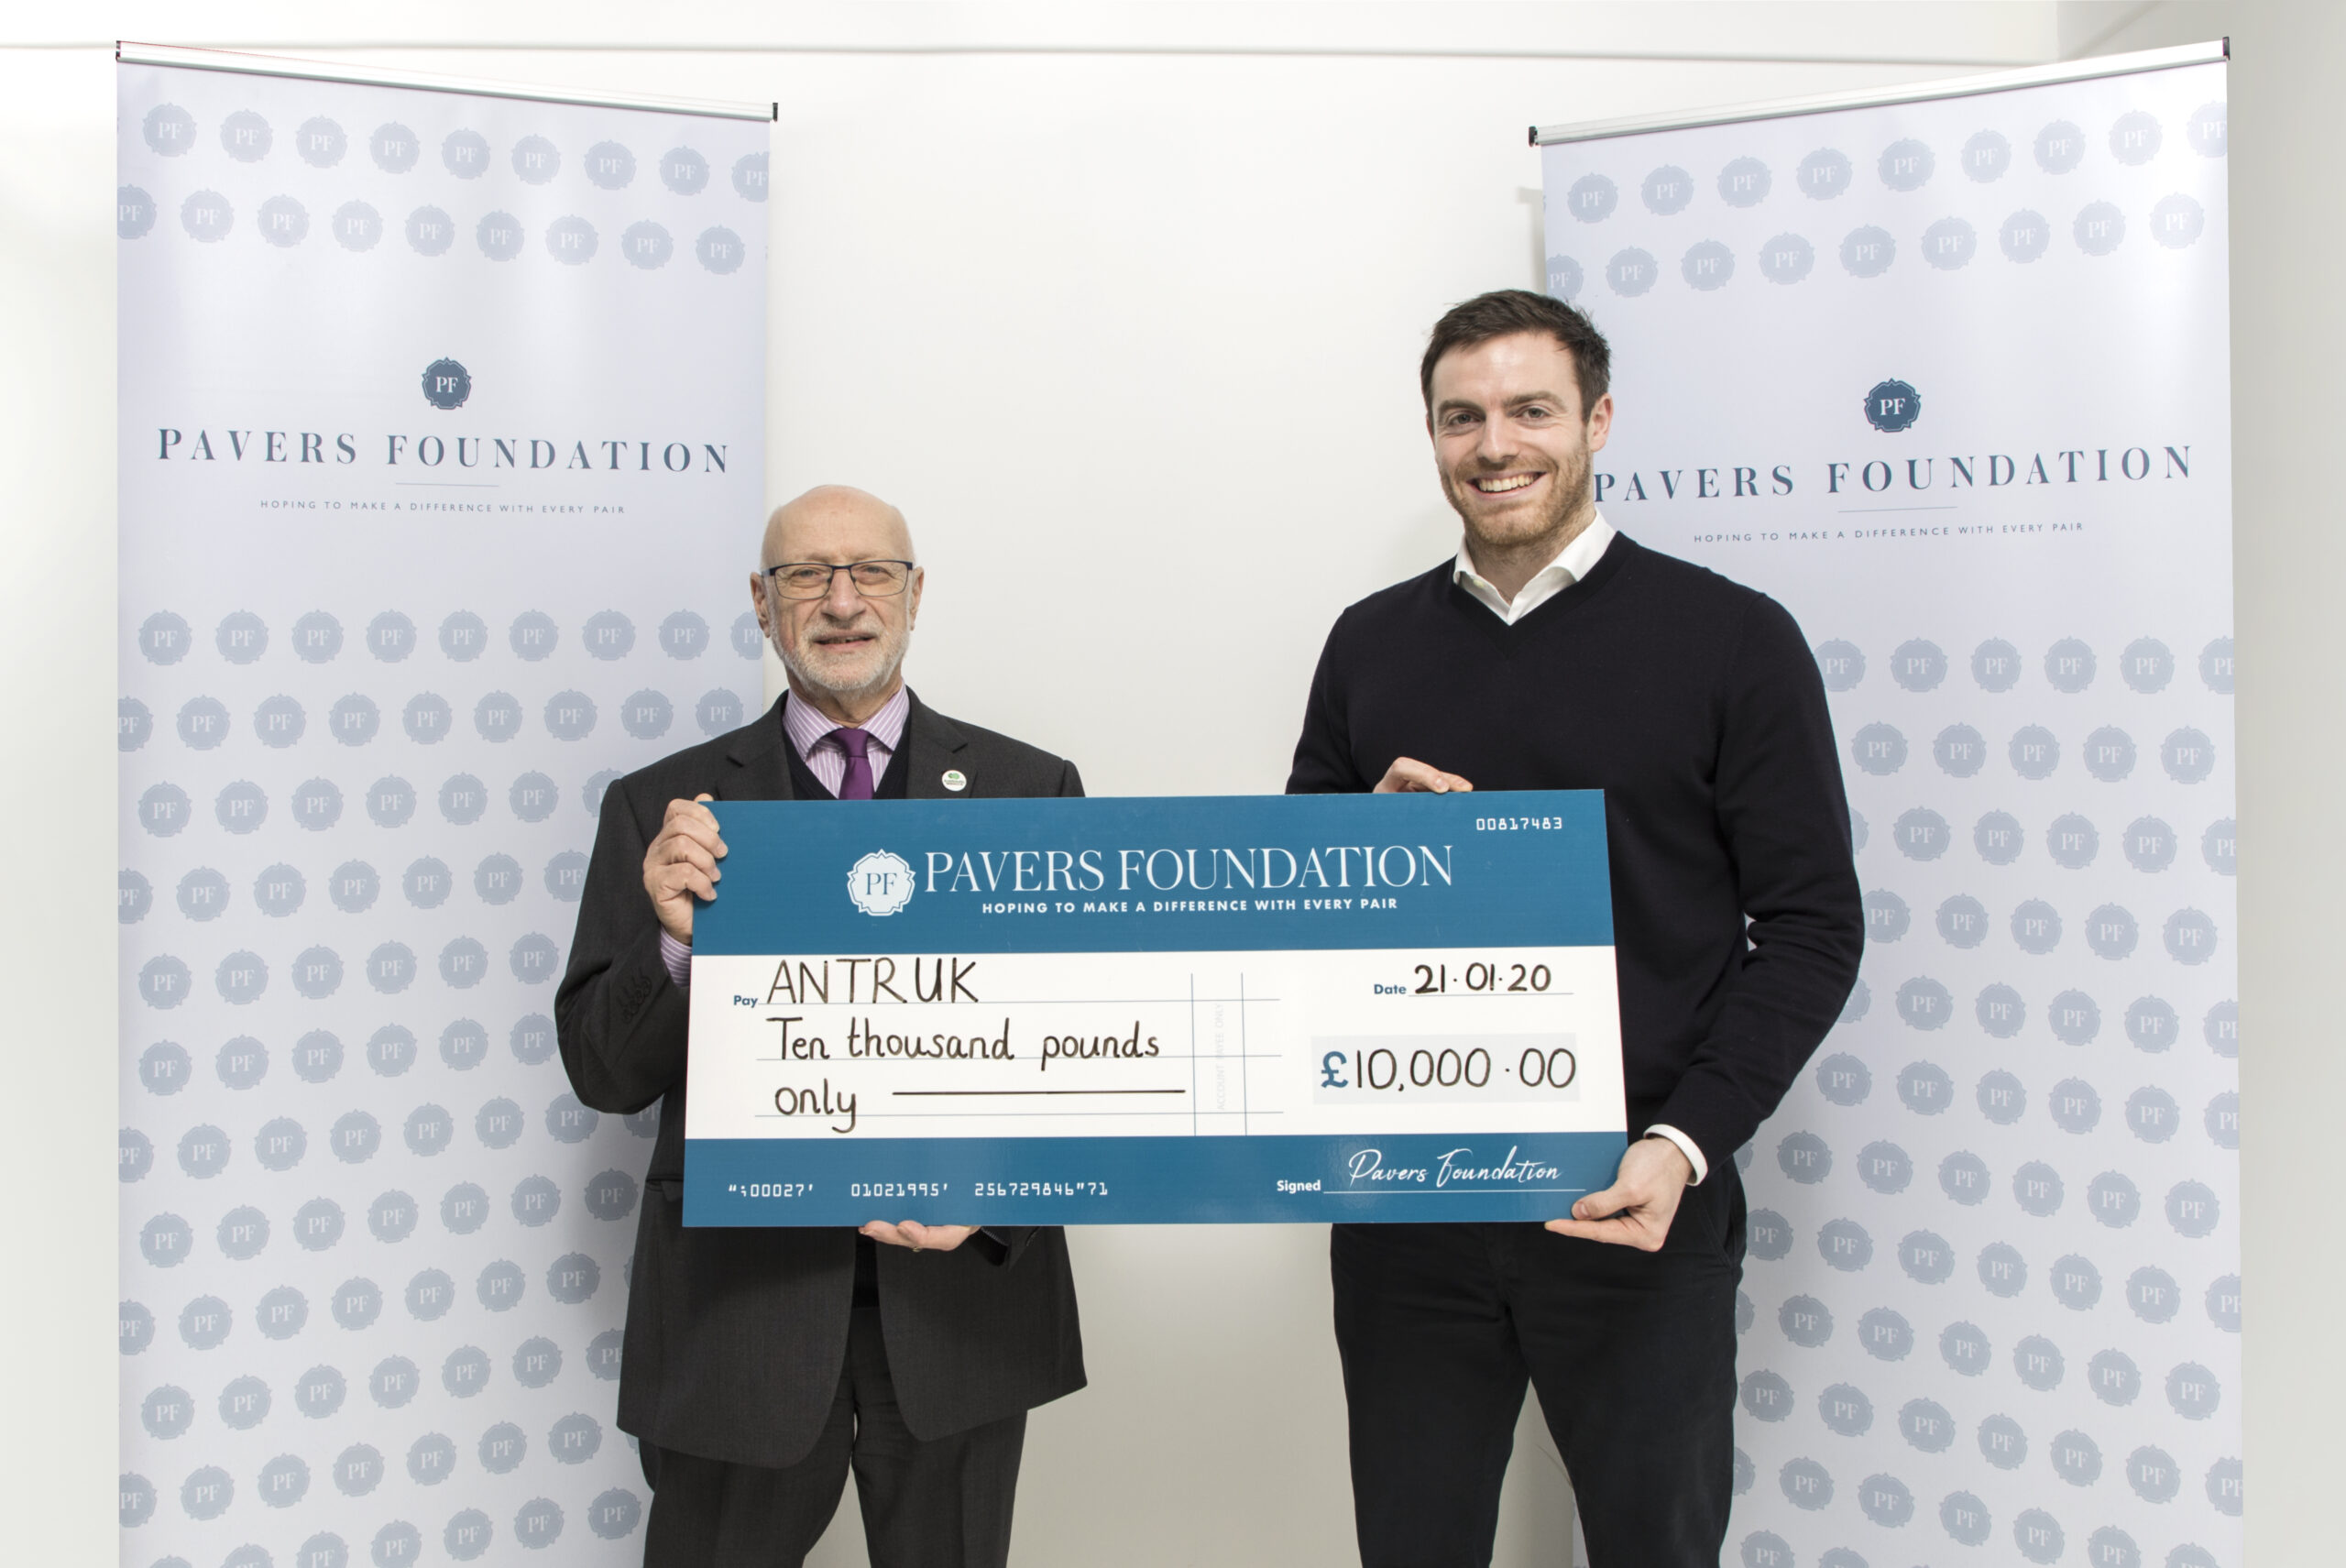 Antibiotic Research UK receives £10,000 from the Pavers Foundation!